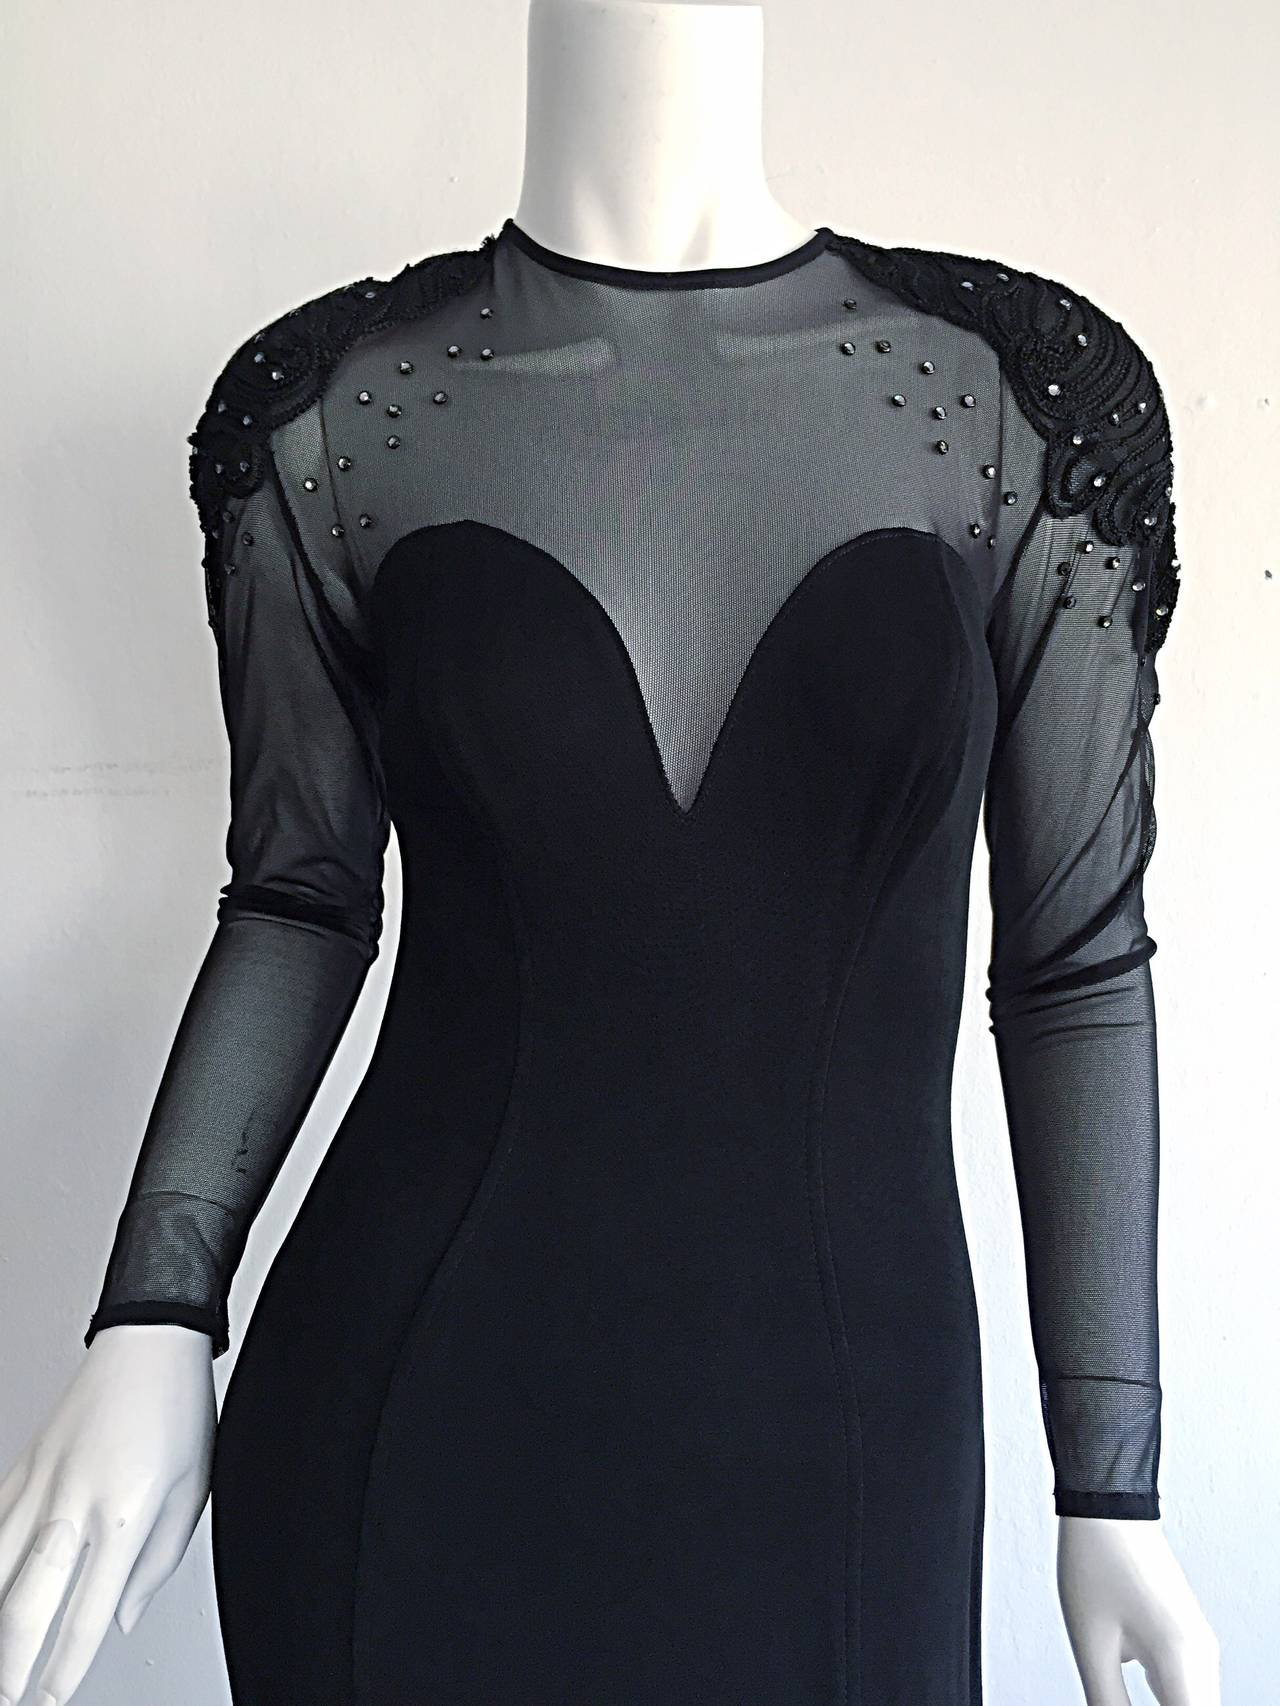 Sexy Vintage 1990s Black Cut - Out Bodycon Dress w/ Rhinestones In Excellent Condition For Sale In San Francisco, CA